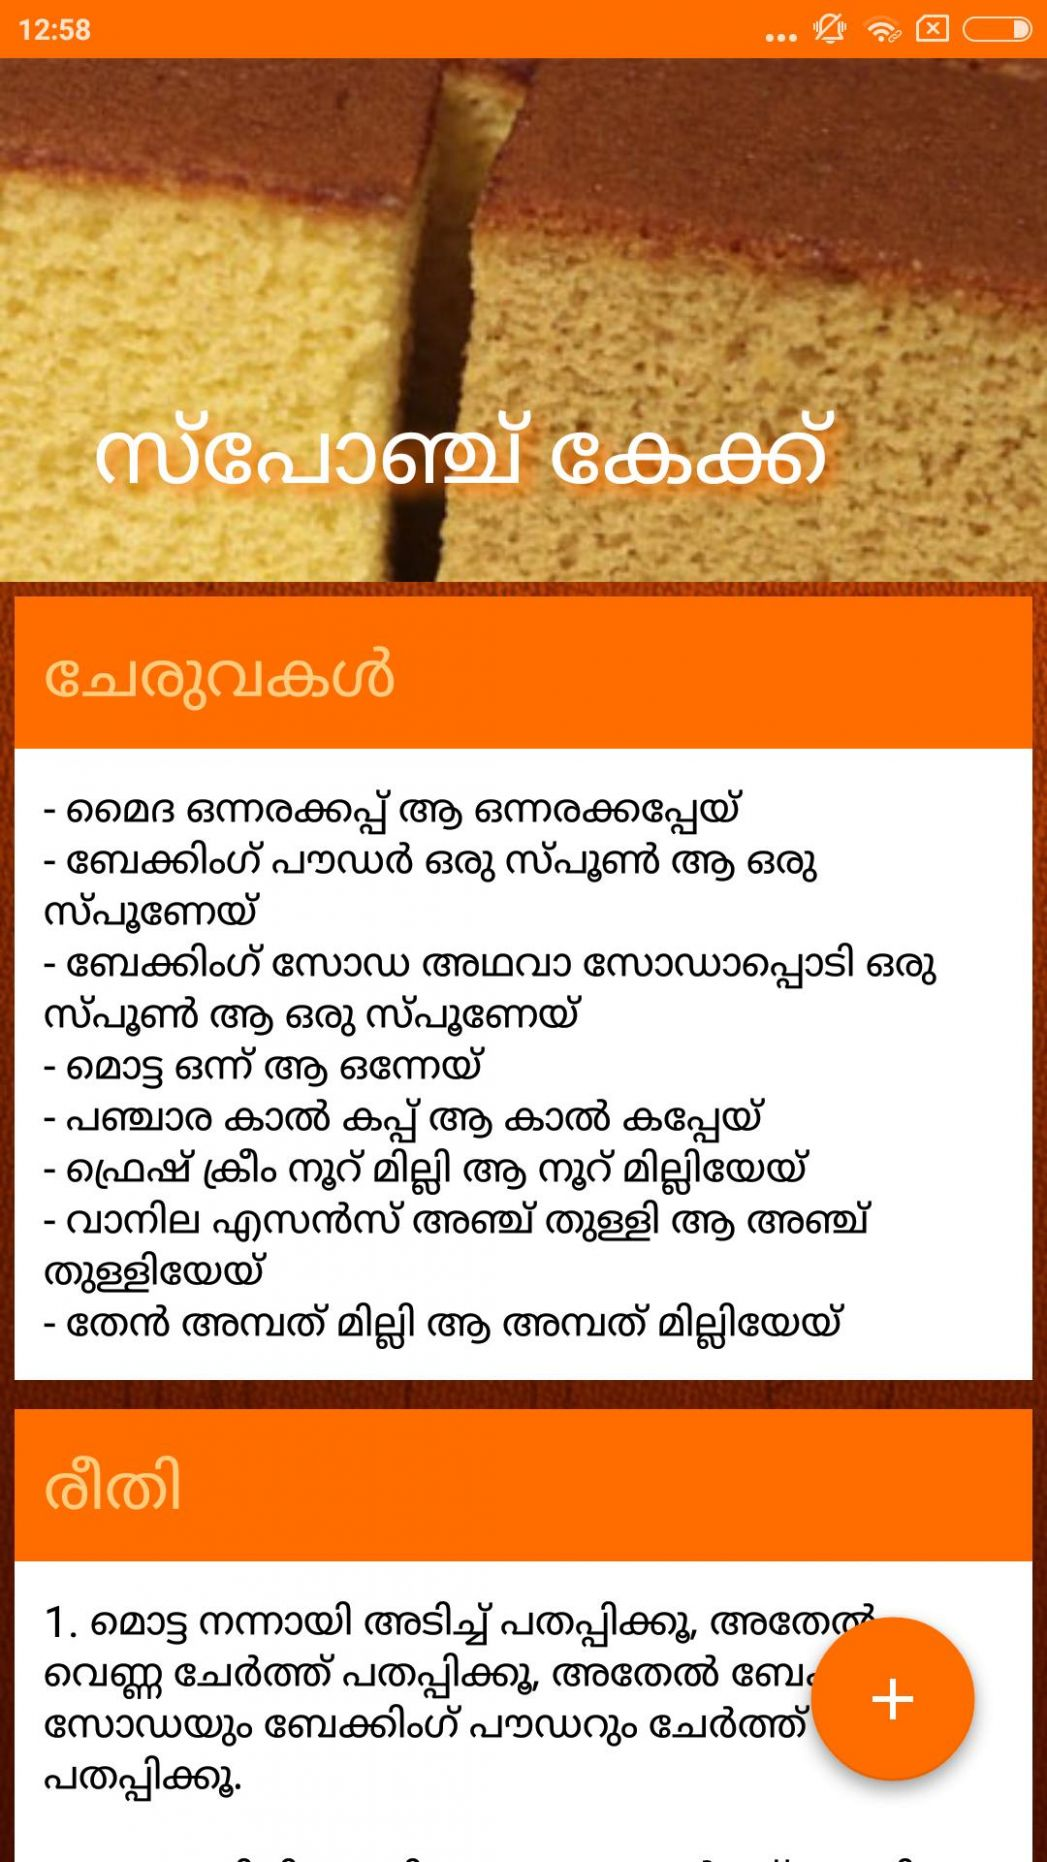 Malayalam Cake Recipes for Android - APK Download - Cake Recipes Malayalam Video